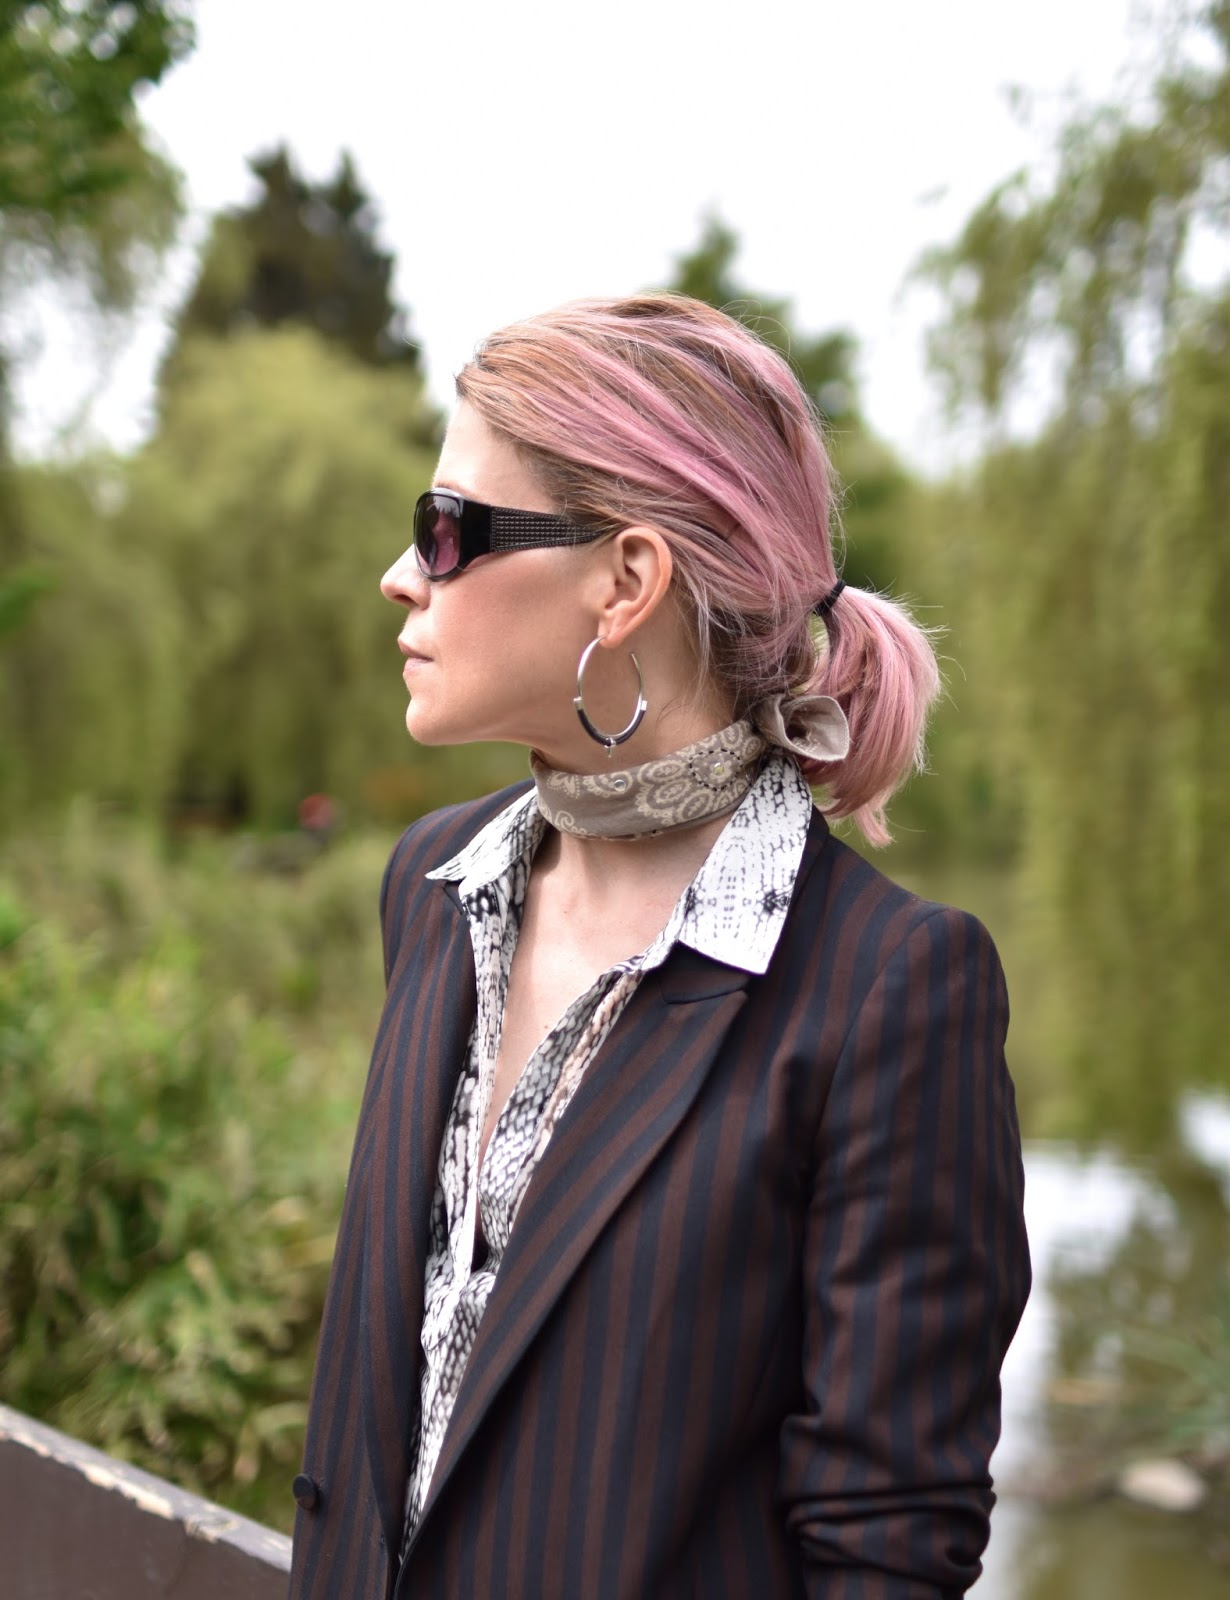 Monika Faulkner outfit inspiration - slouchy suit jacket, snake-patterned blouse, bandana, sunglasses